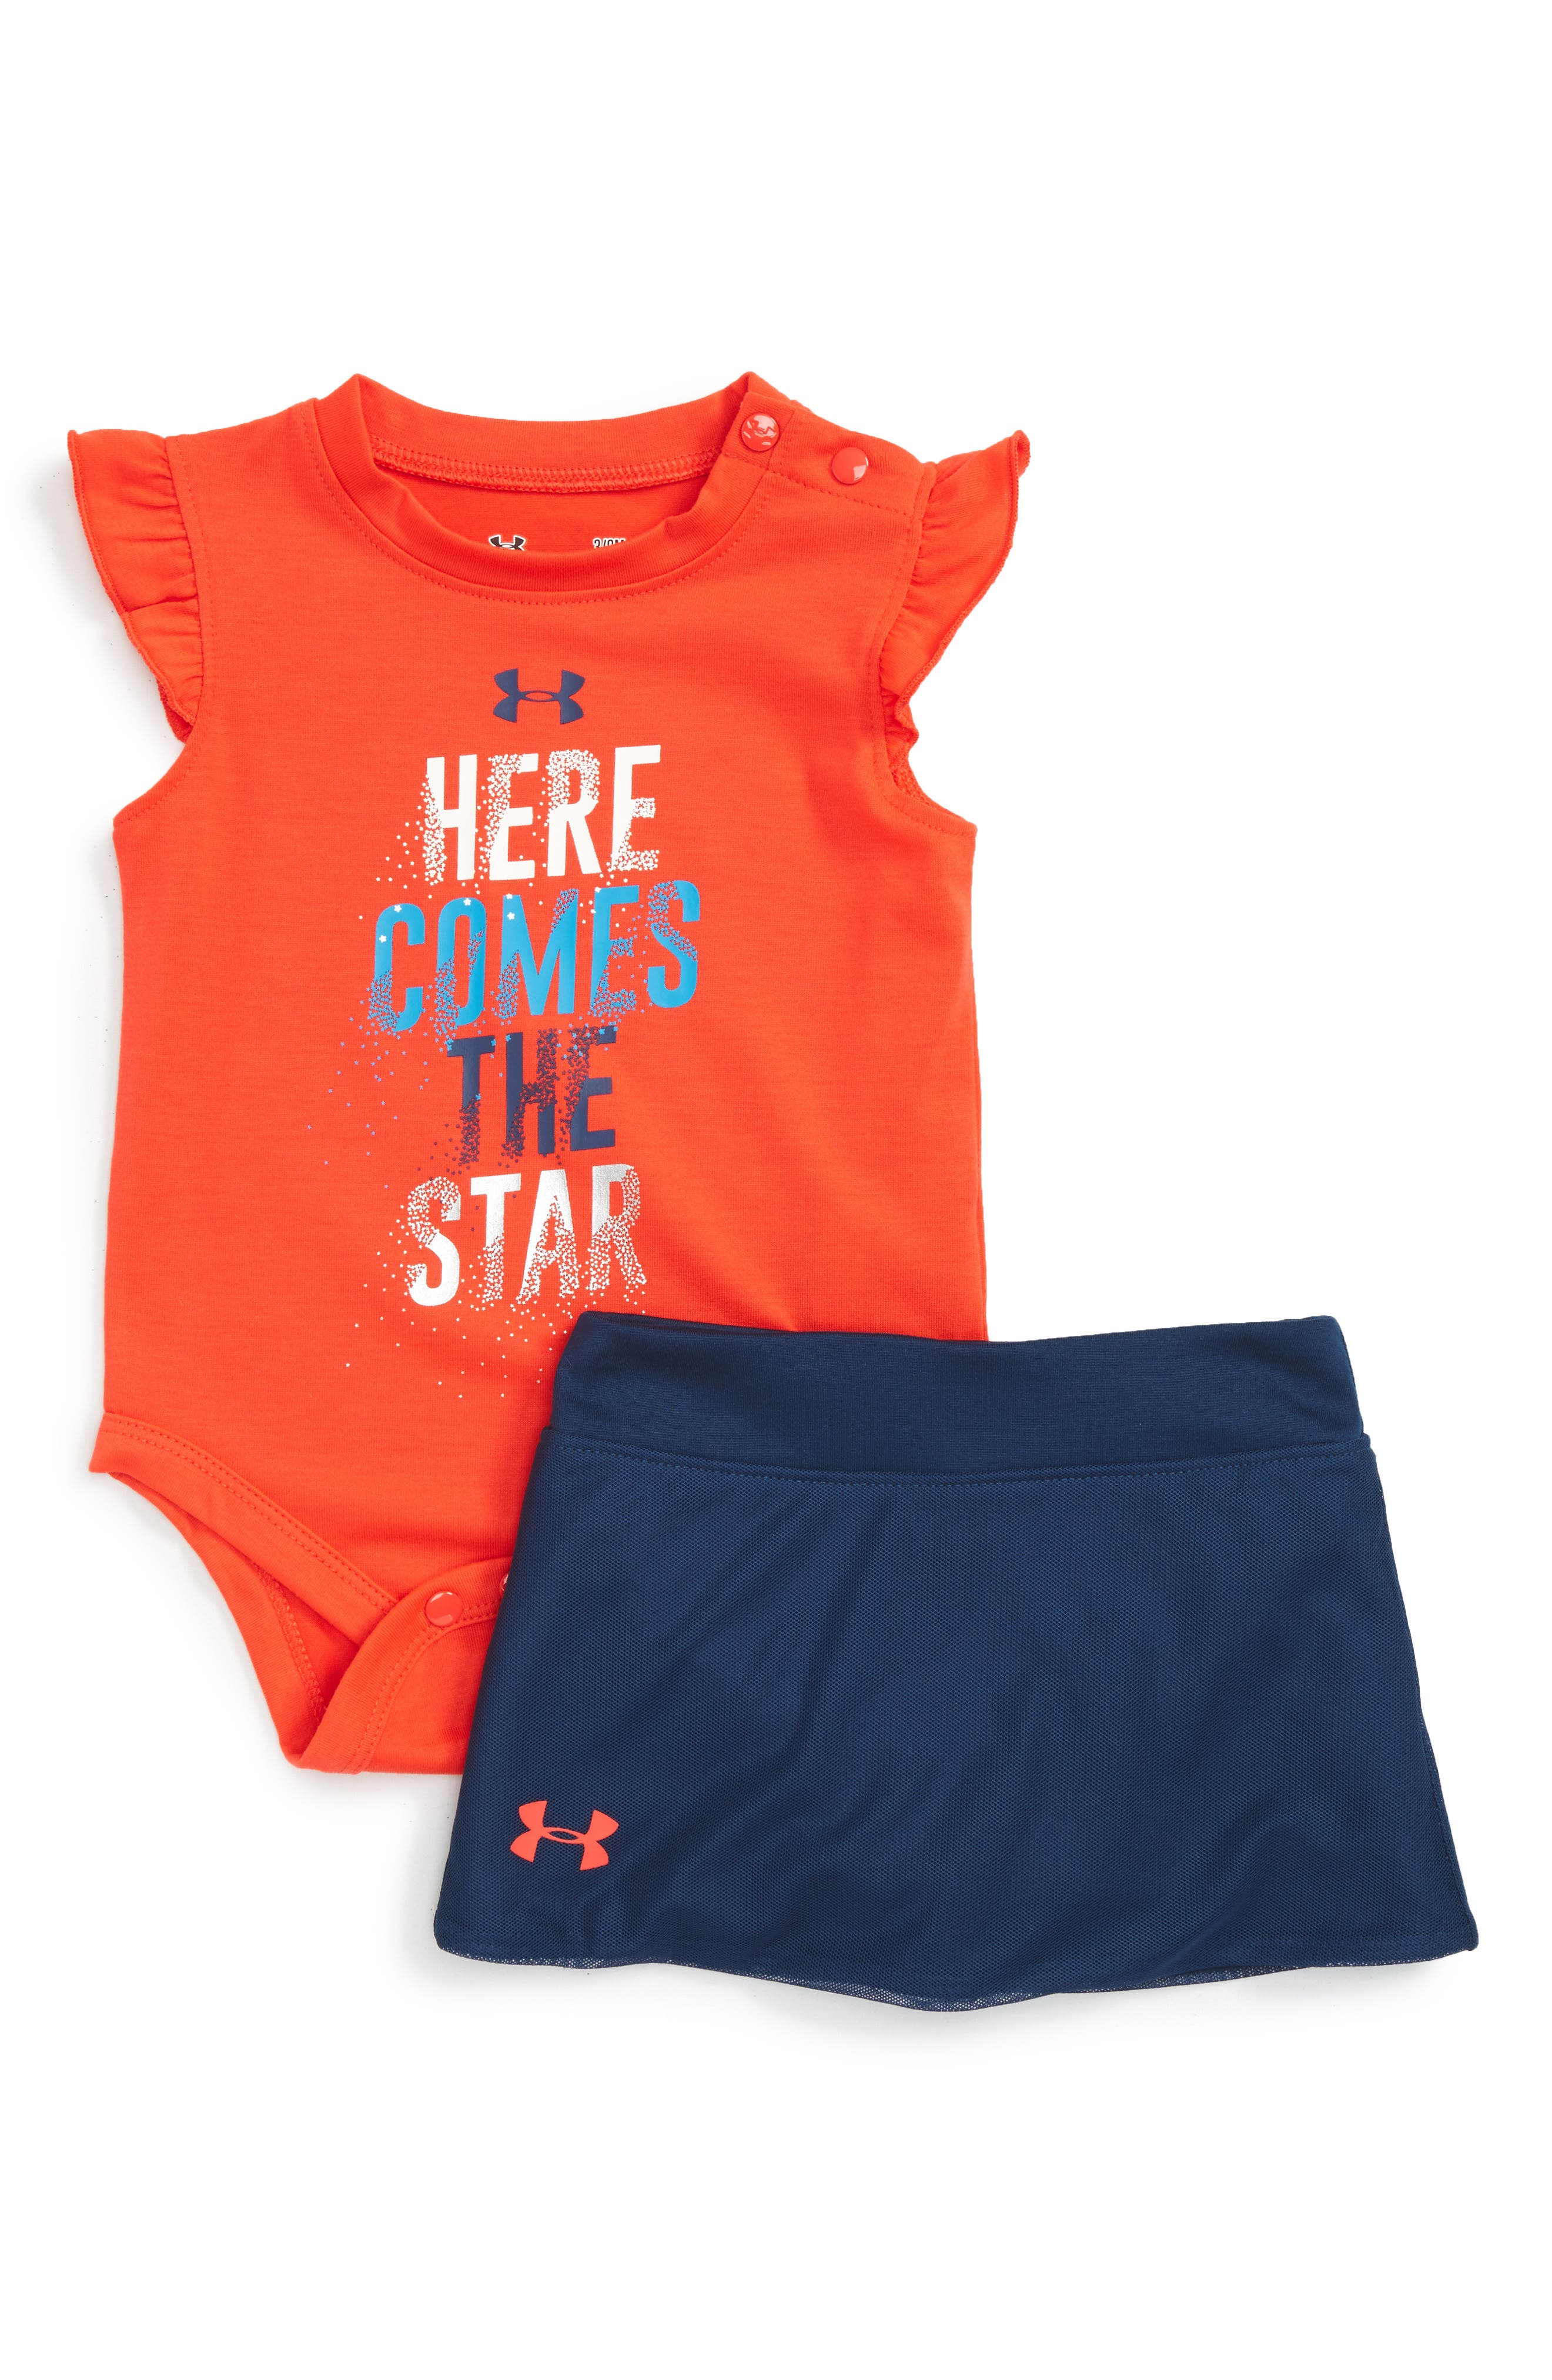 Under Armour Here Comes The Star Graphic Tee & Skort Set (Baby Girls)